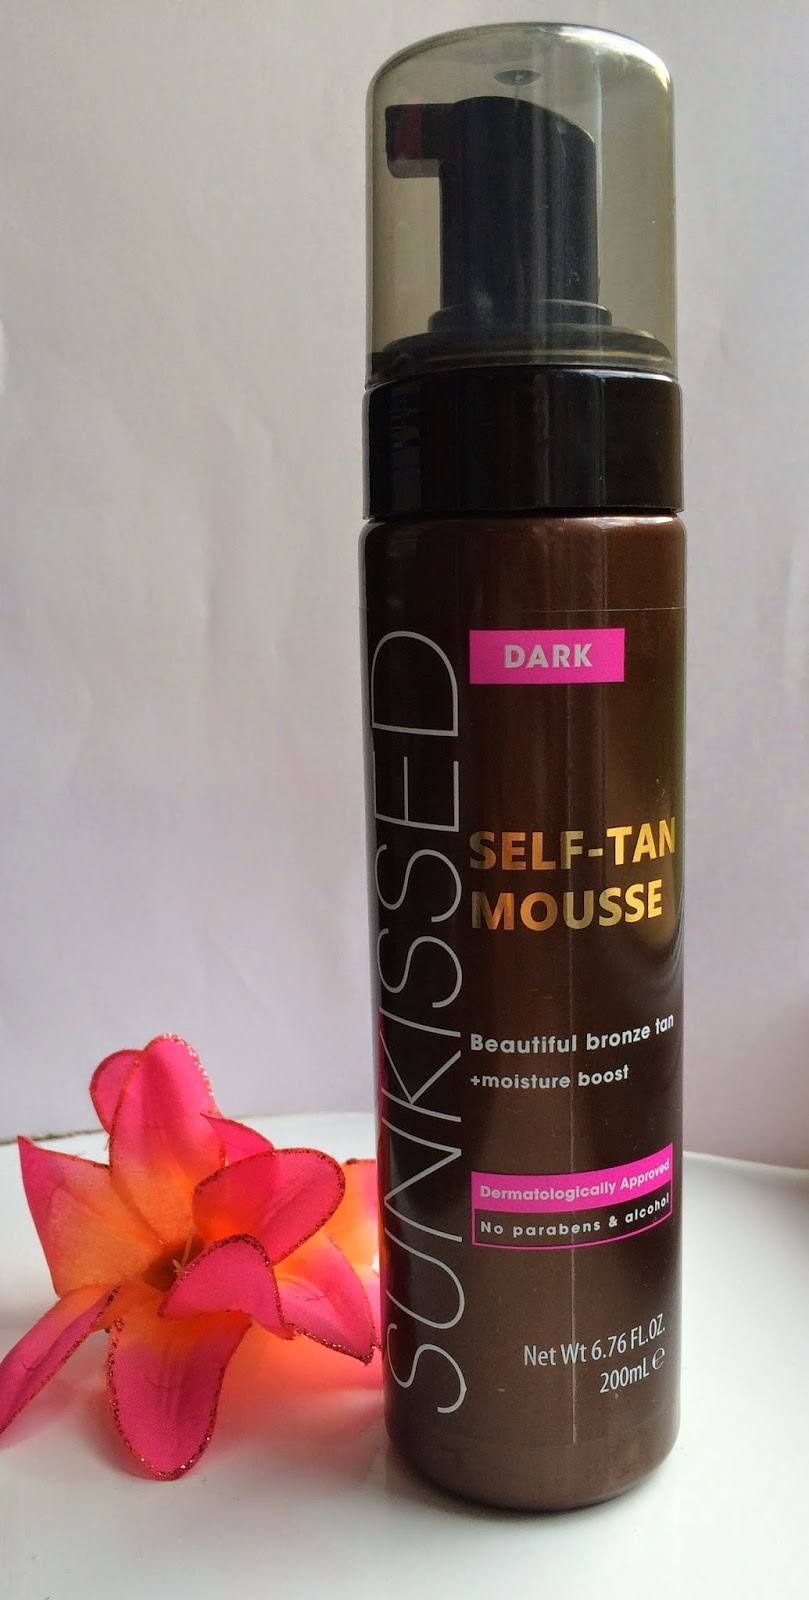 Sunkissed-Dark-Self-tan-mousse-review